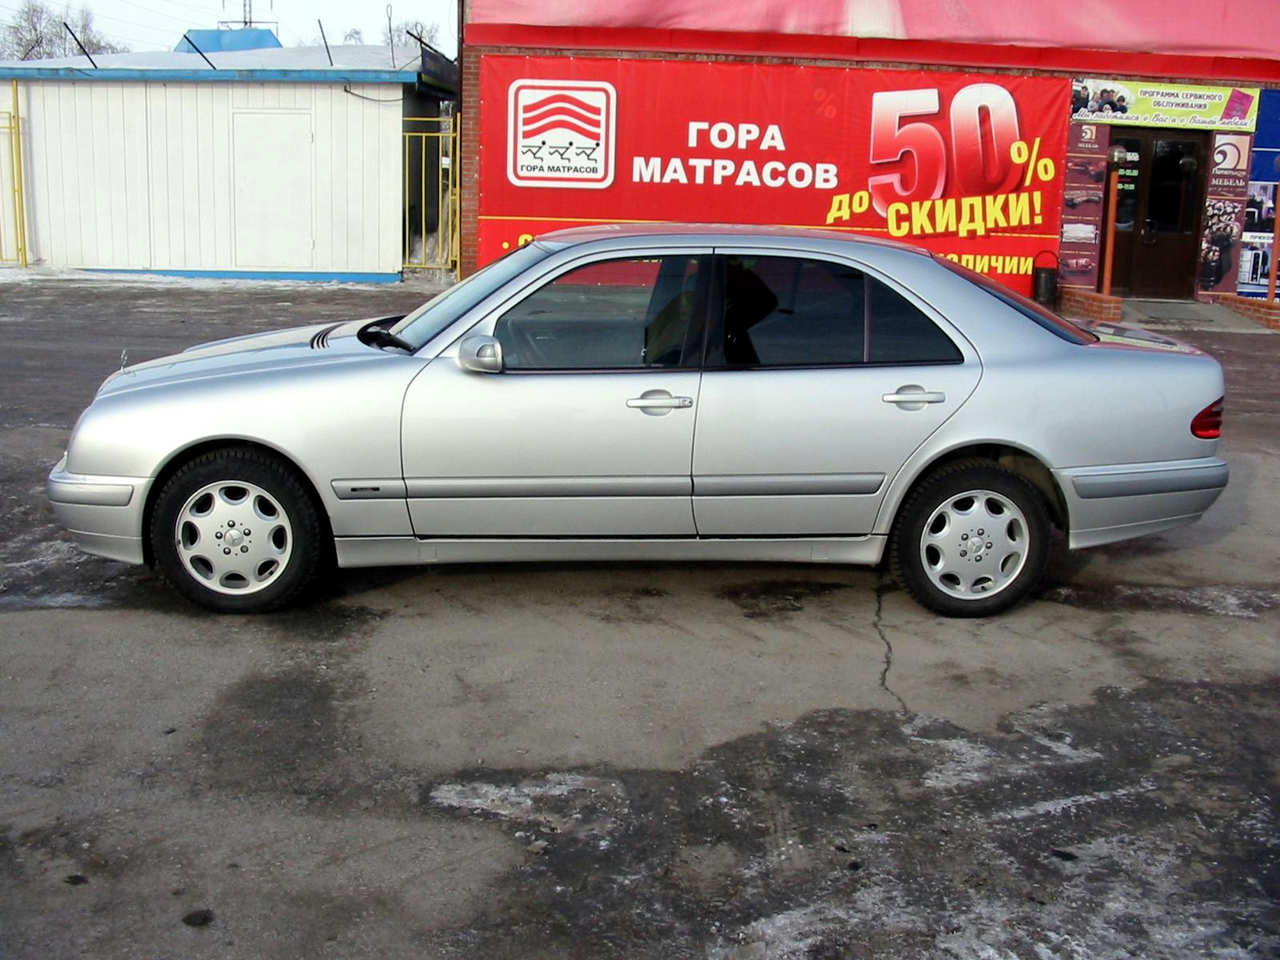 2000 mercedes benz e class pictures diesel fr or for 2000 mercedes benz e class e320